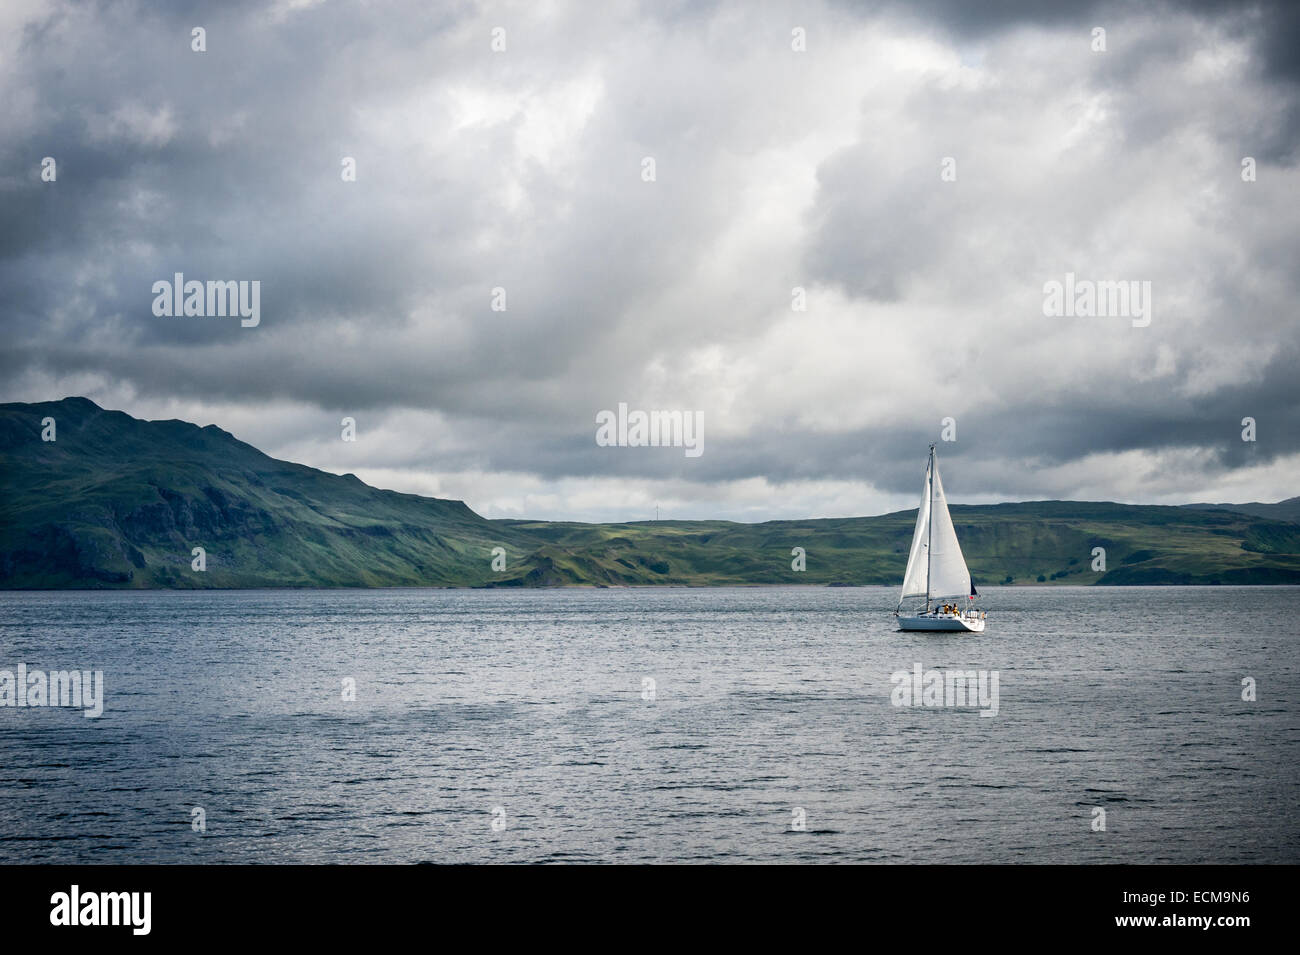 A yacht sails between the Island of Mull in the Scottish Inner Hebrides and Ardnamurchan on the mainland. Stock Photo